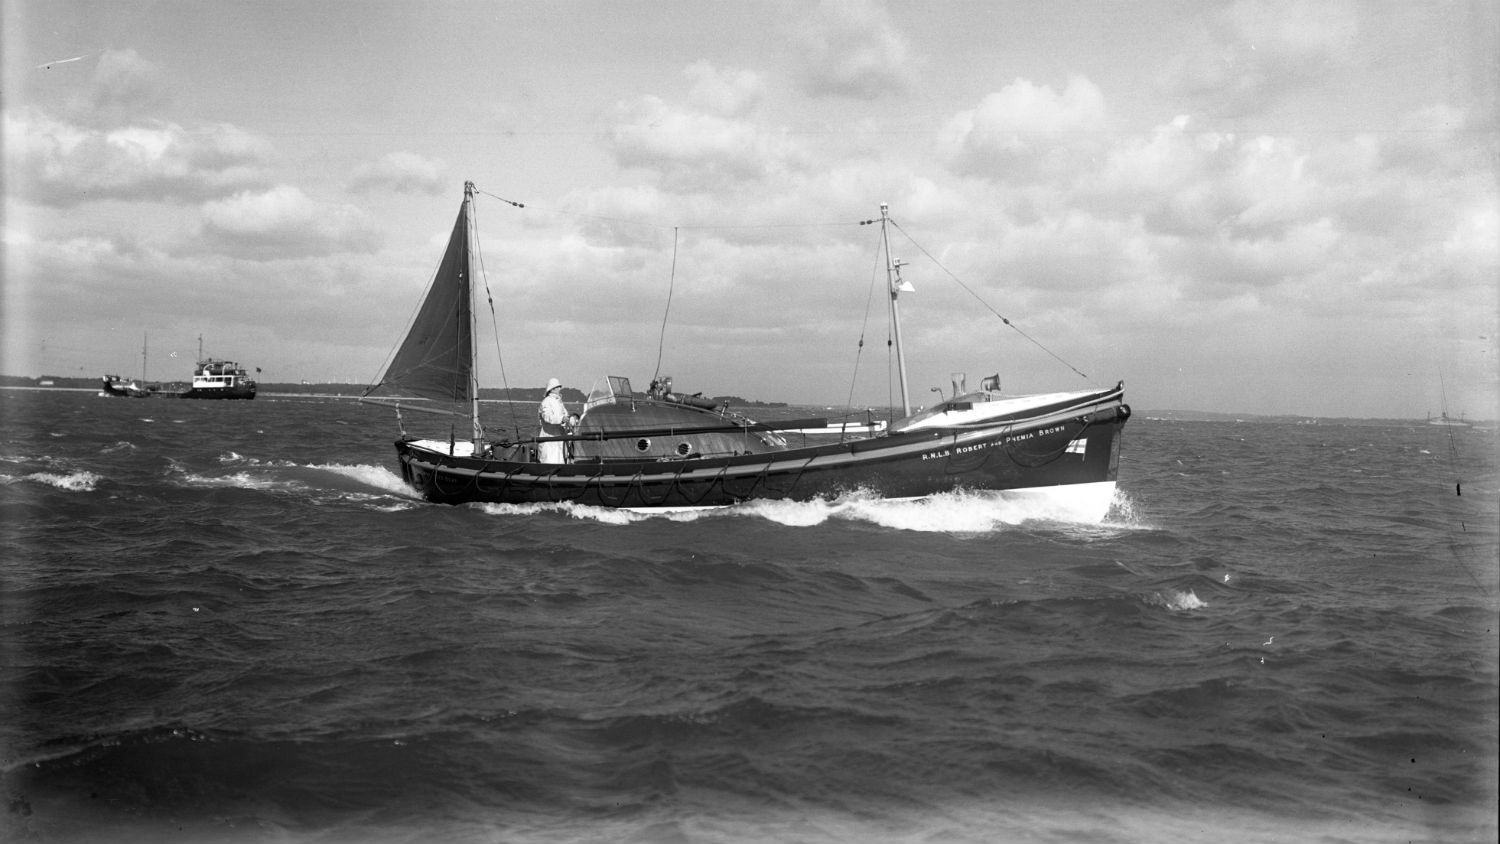 Black and white image of Ilfracombe lifeboat, Robert and Phemia Brown, while on trials